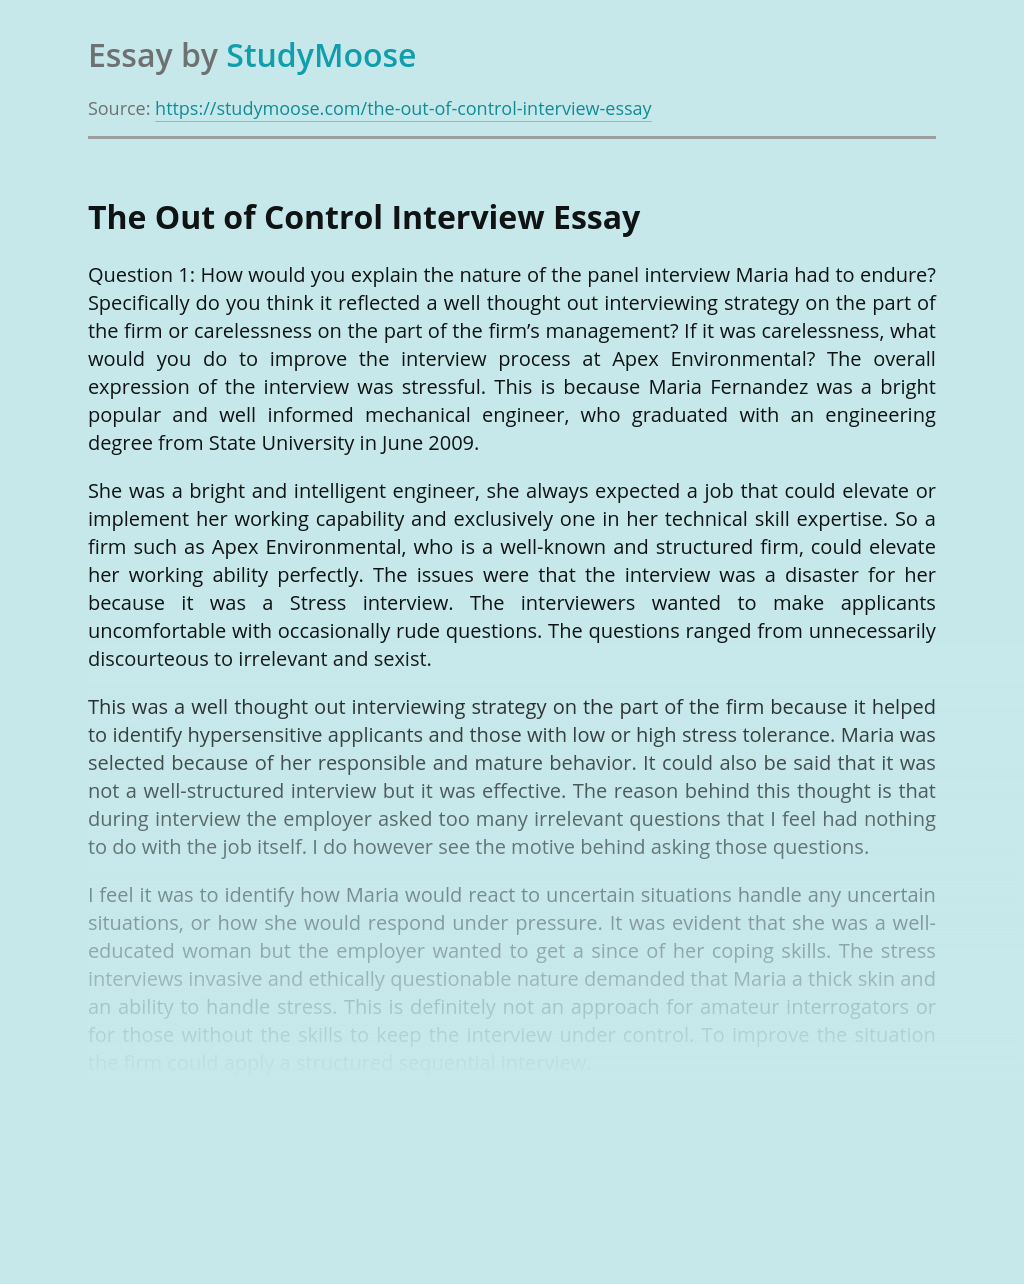 The Out of Control Interview